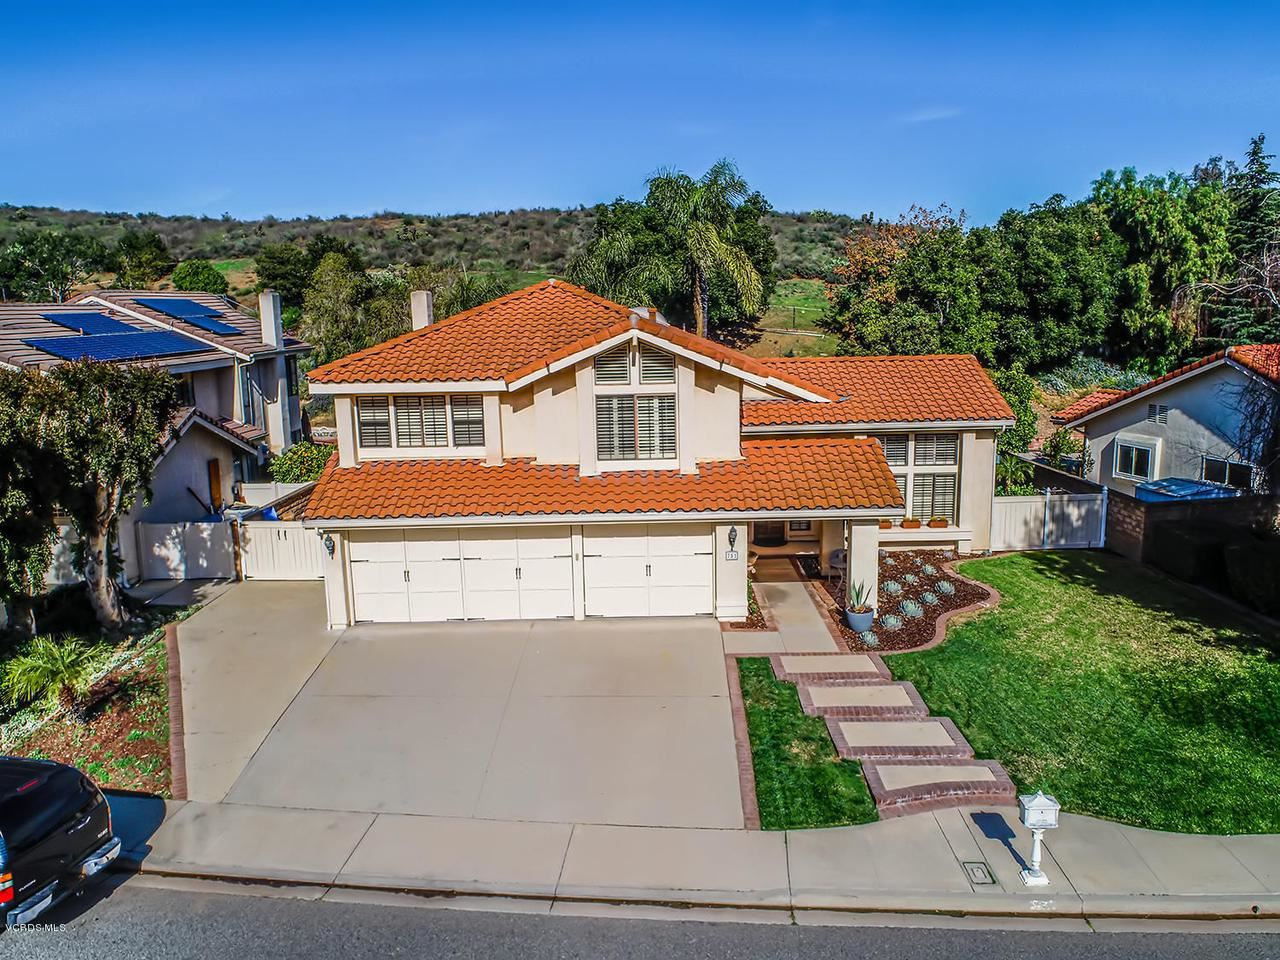 Photo of 751 LYNNMERE Drive, Thousand Oaks, CA 91360 (MLS # 220001040)